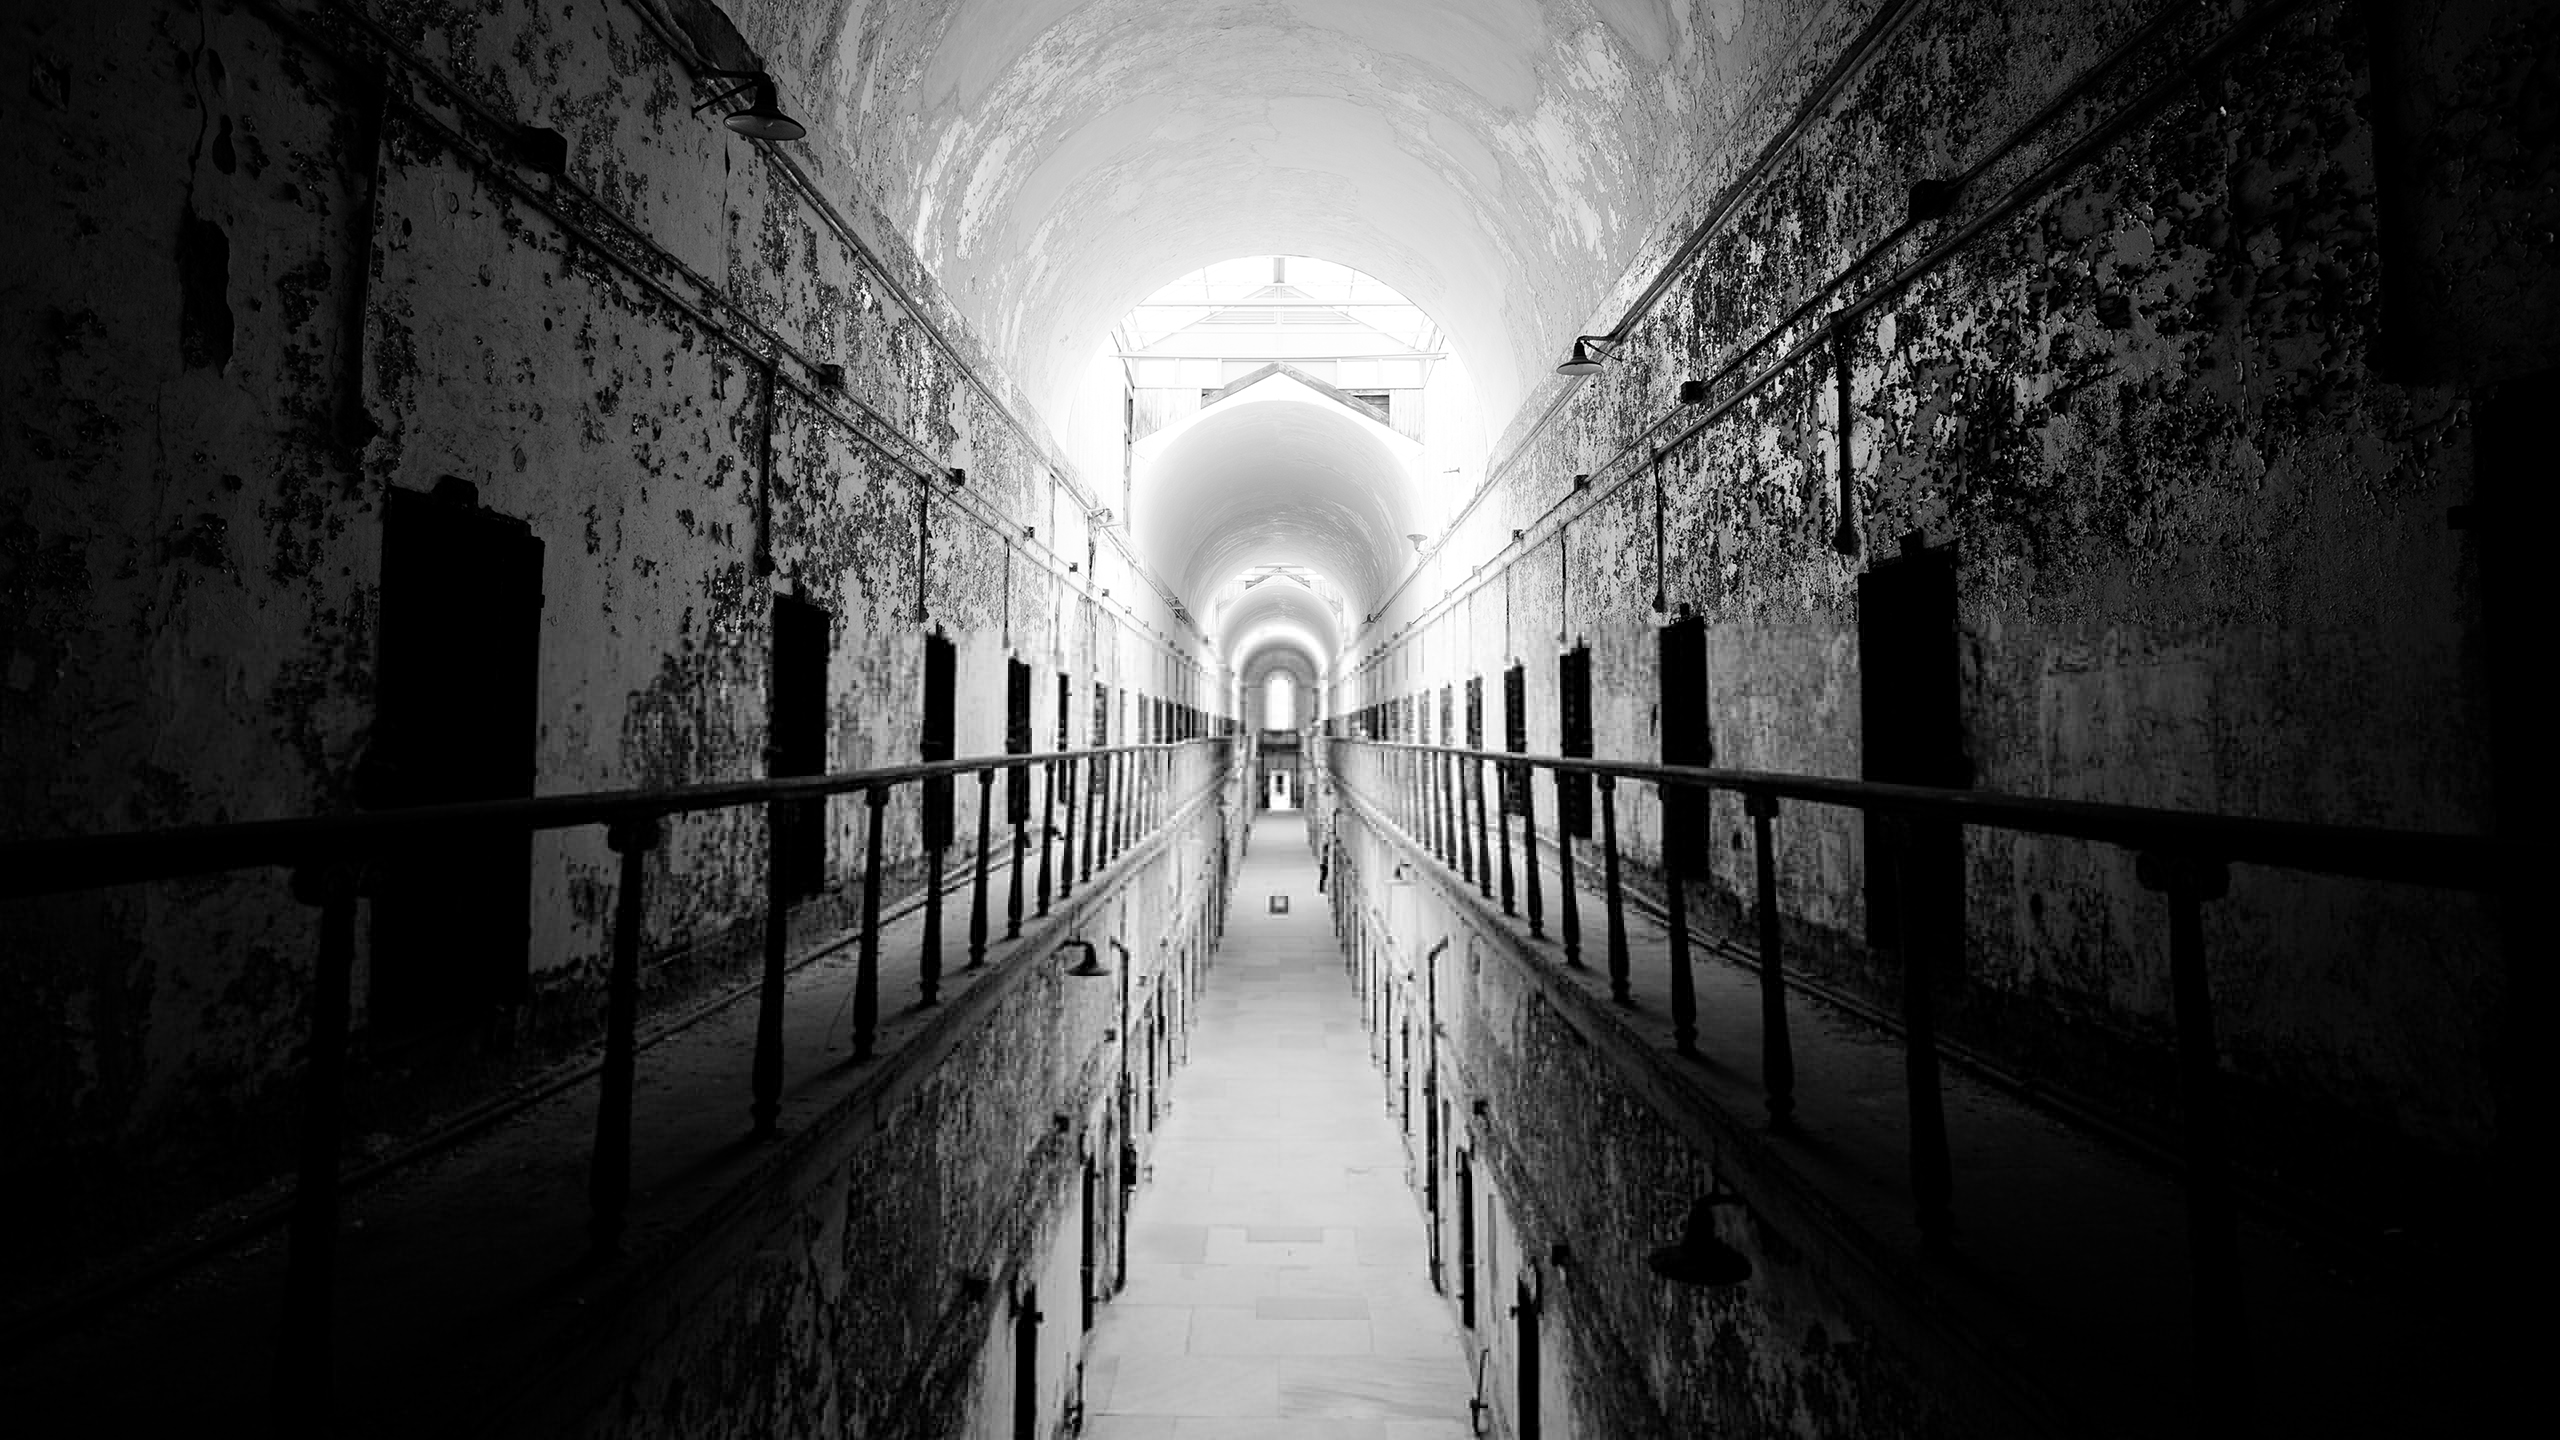 inside_of_prison_wallpaper_2560x1440